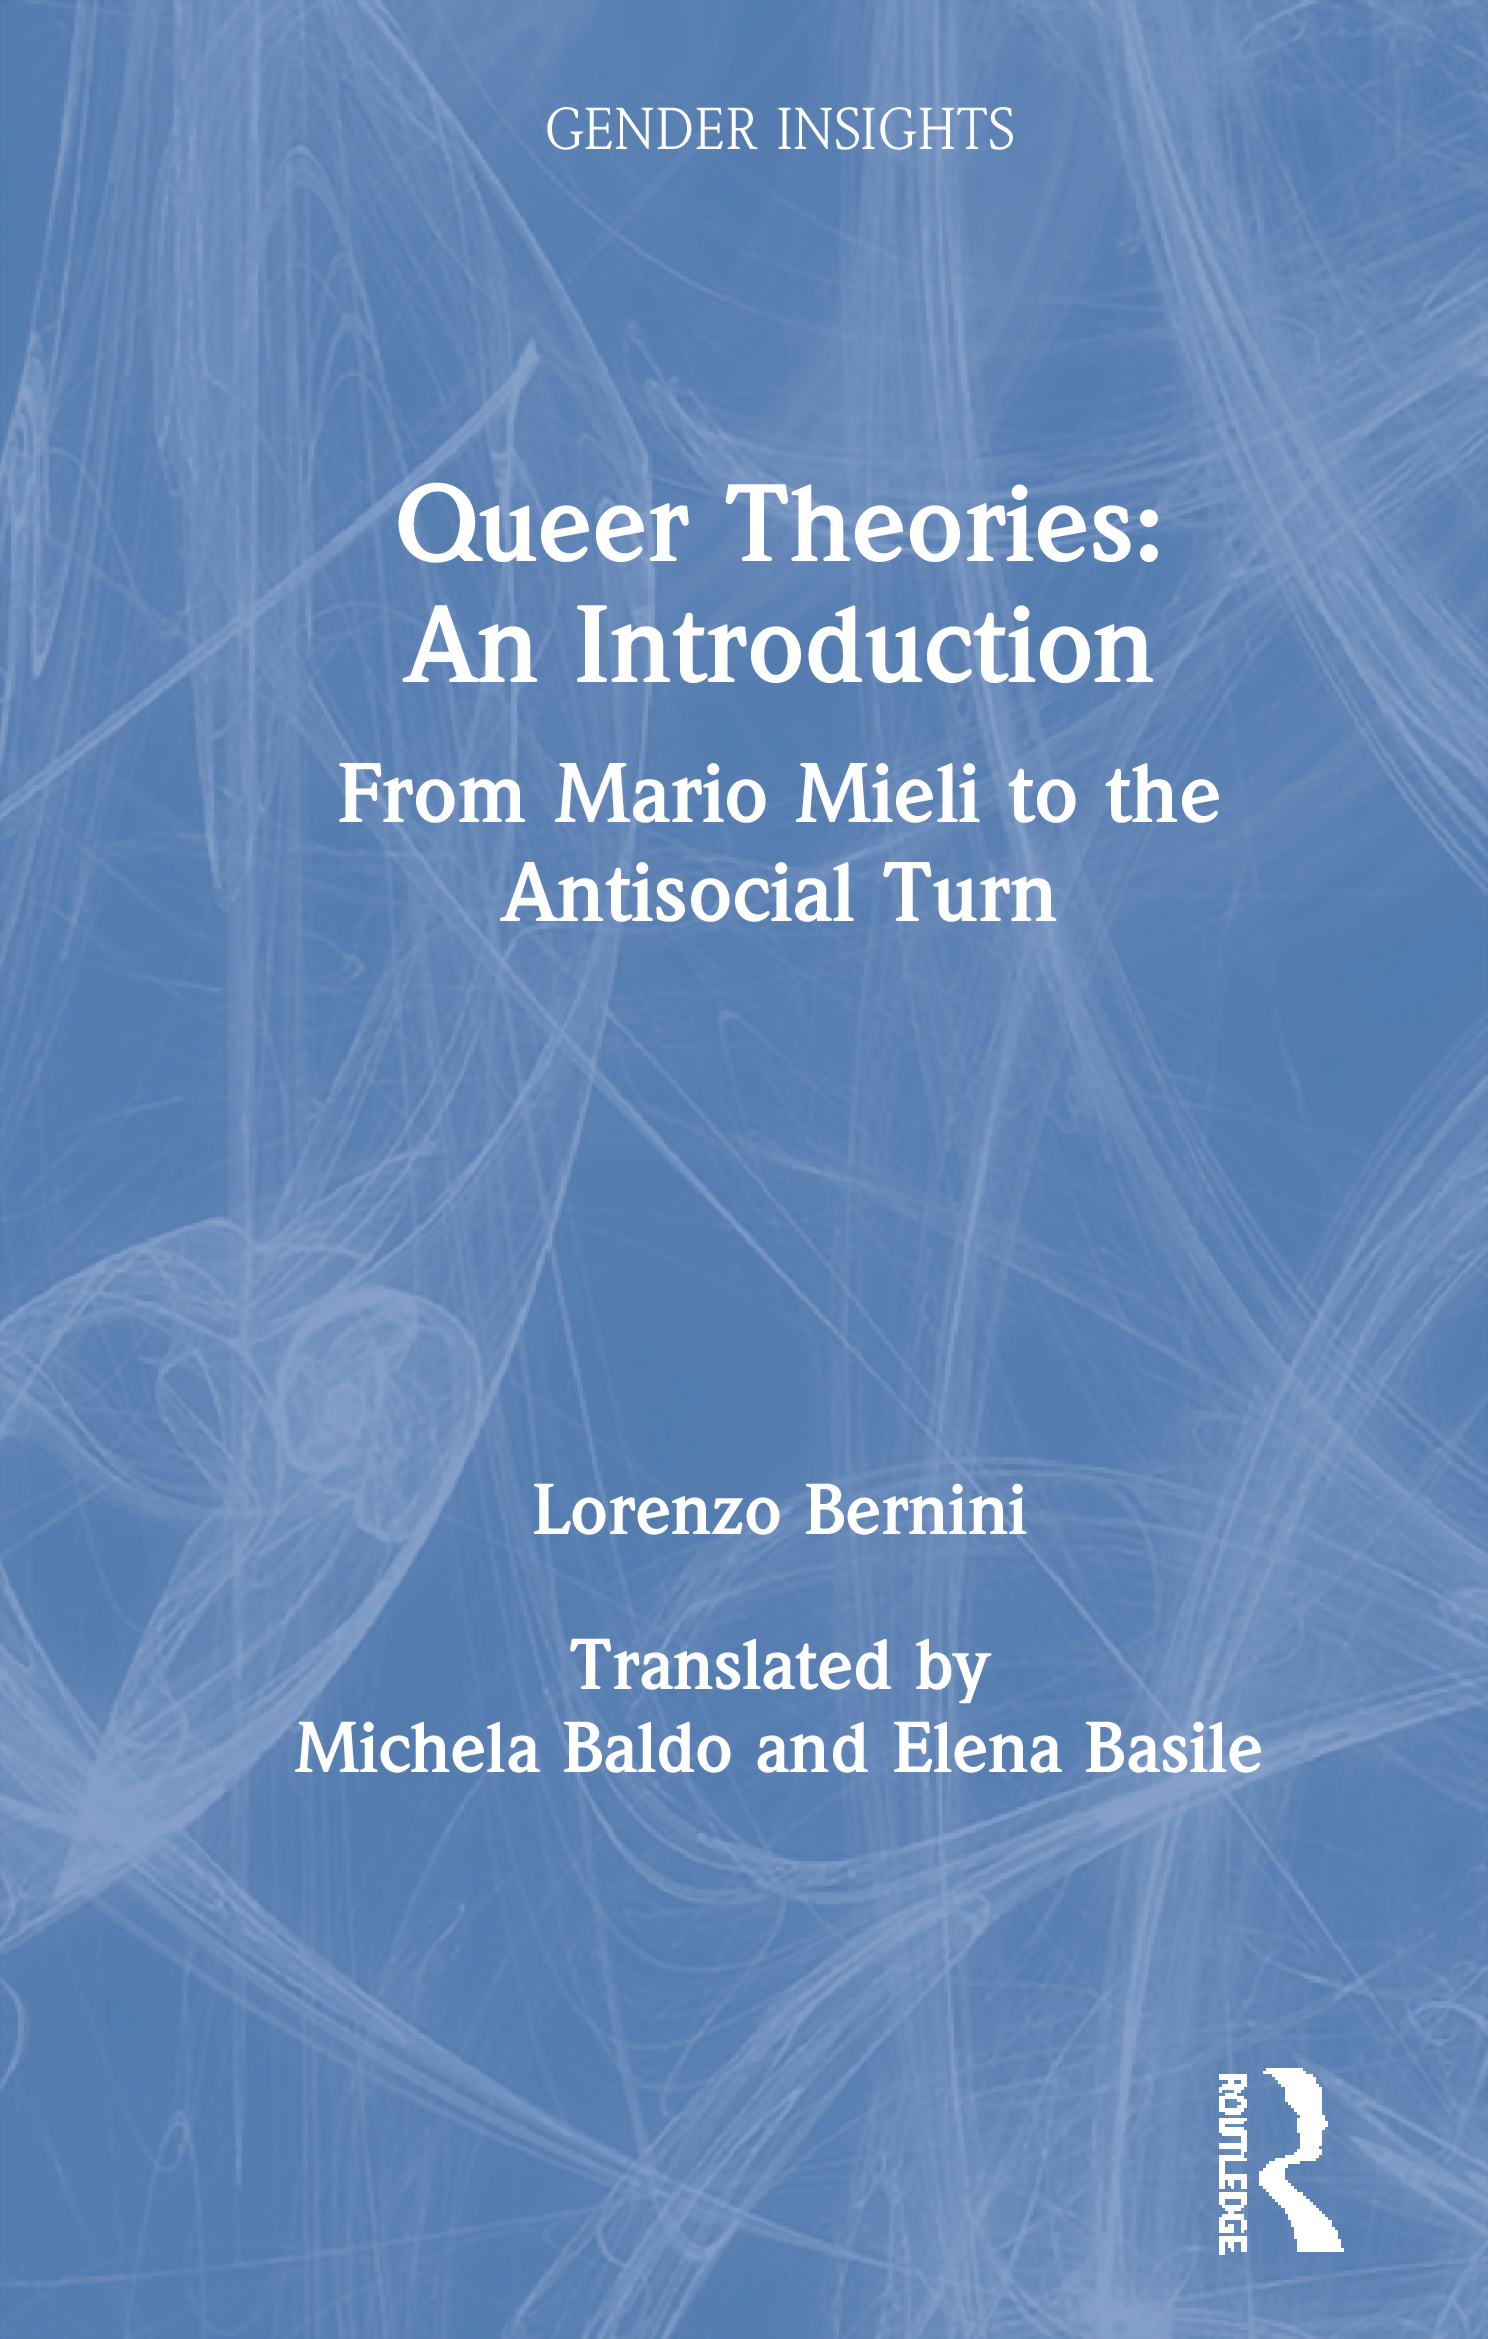 Queer Theories: An Introduction: From Mario Mieli to the Antisocial Turn book cover